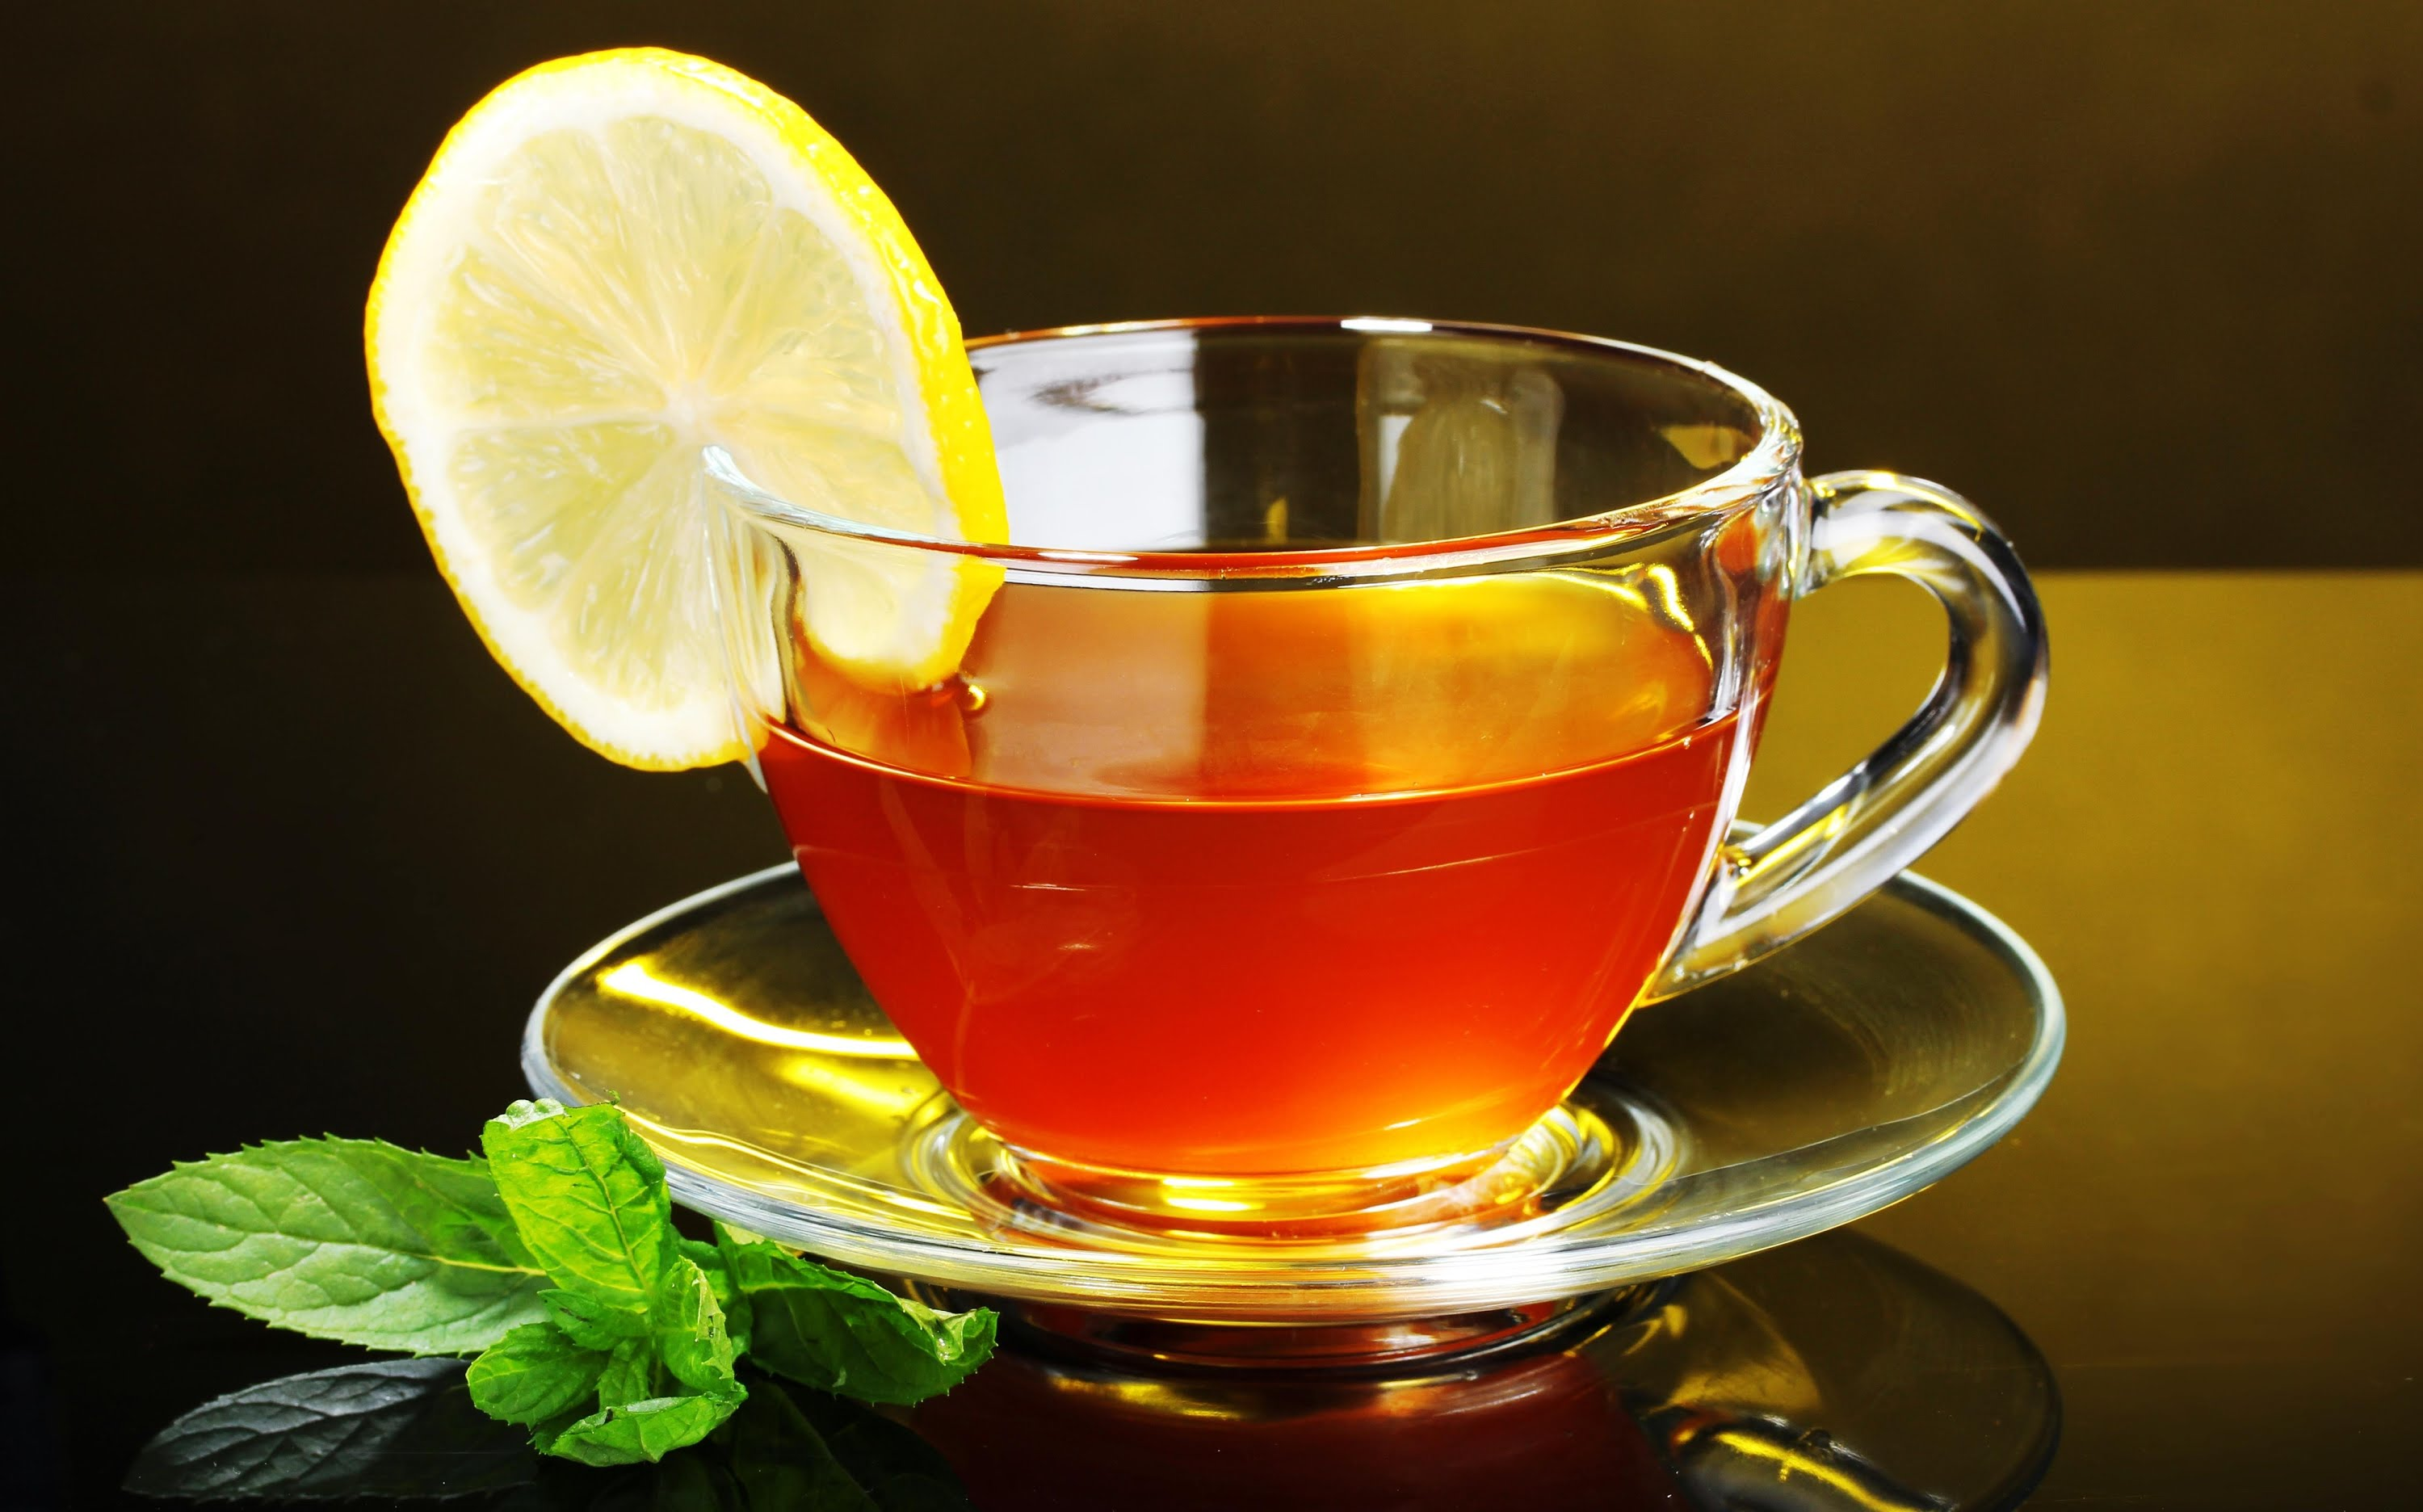 Quick Easy Home Remedy Remedies To Reduce Lose Belly Fat Fast Without Workout Or Exercise